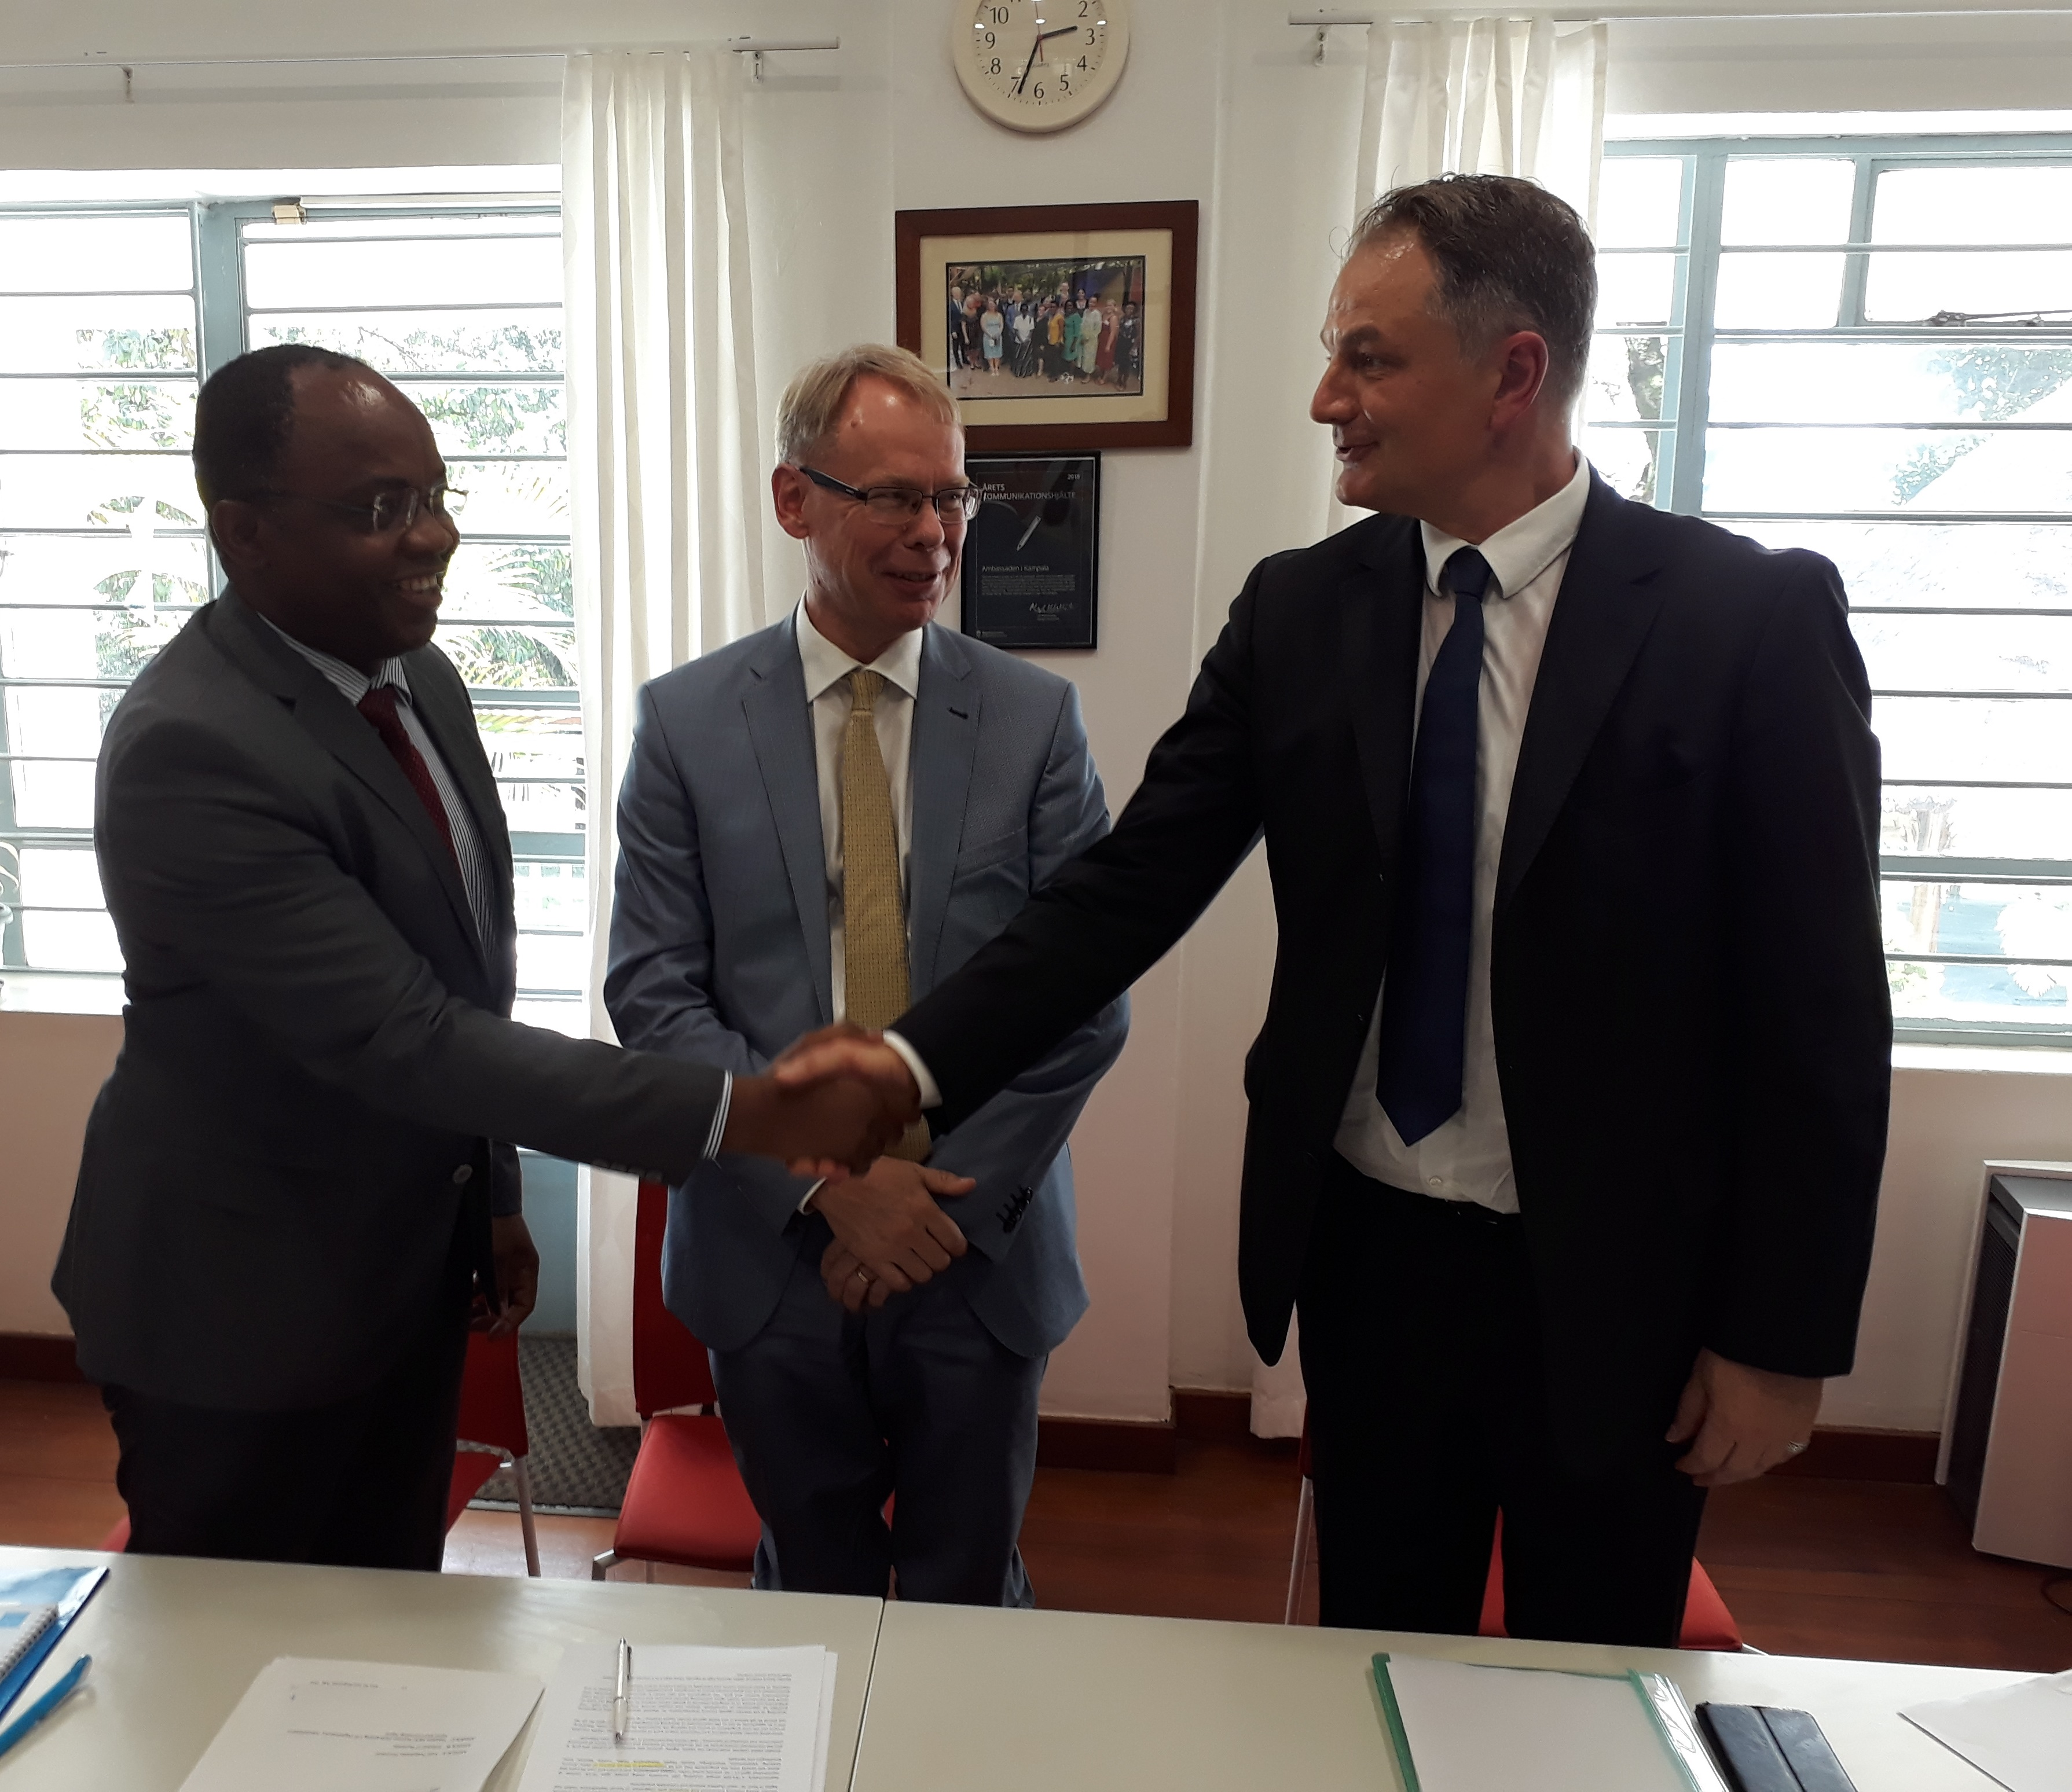 UNFPA Uganda | Sweden commits more funds for prevention and